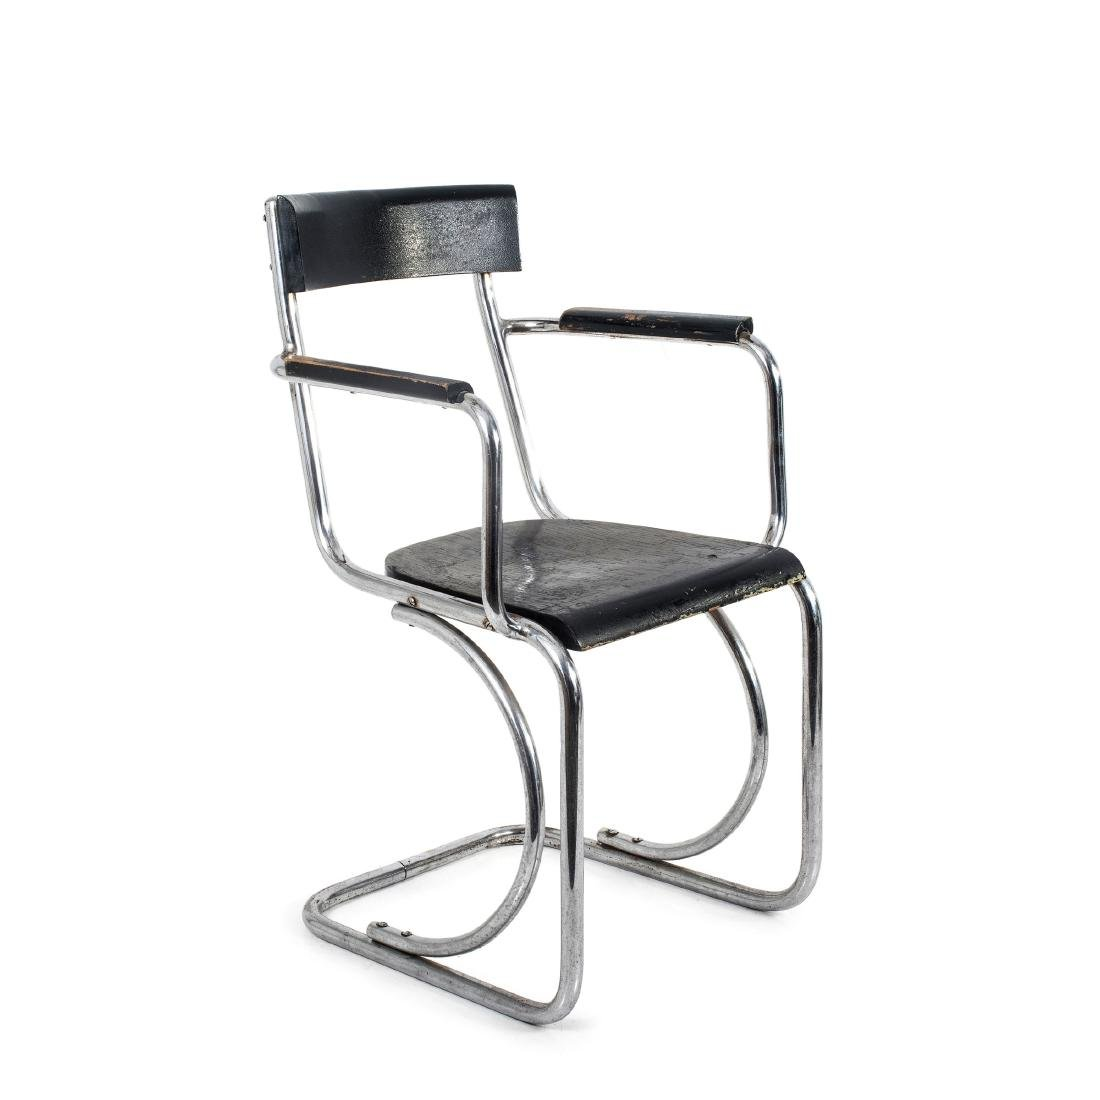 Cantilever chair, 1930/31